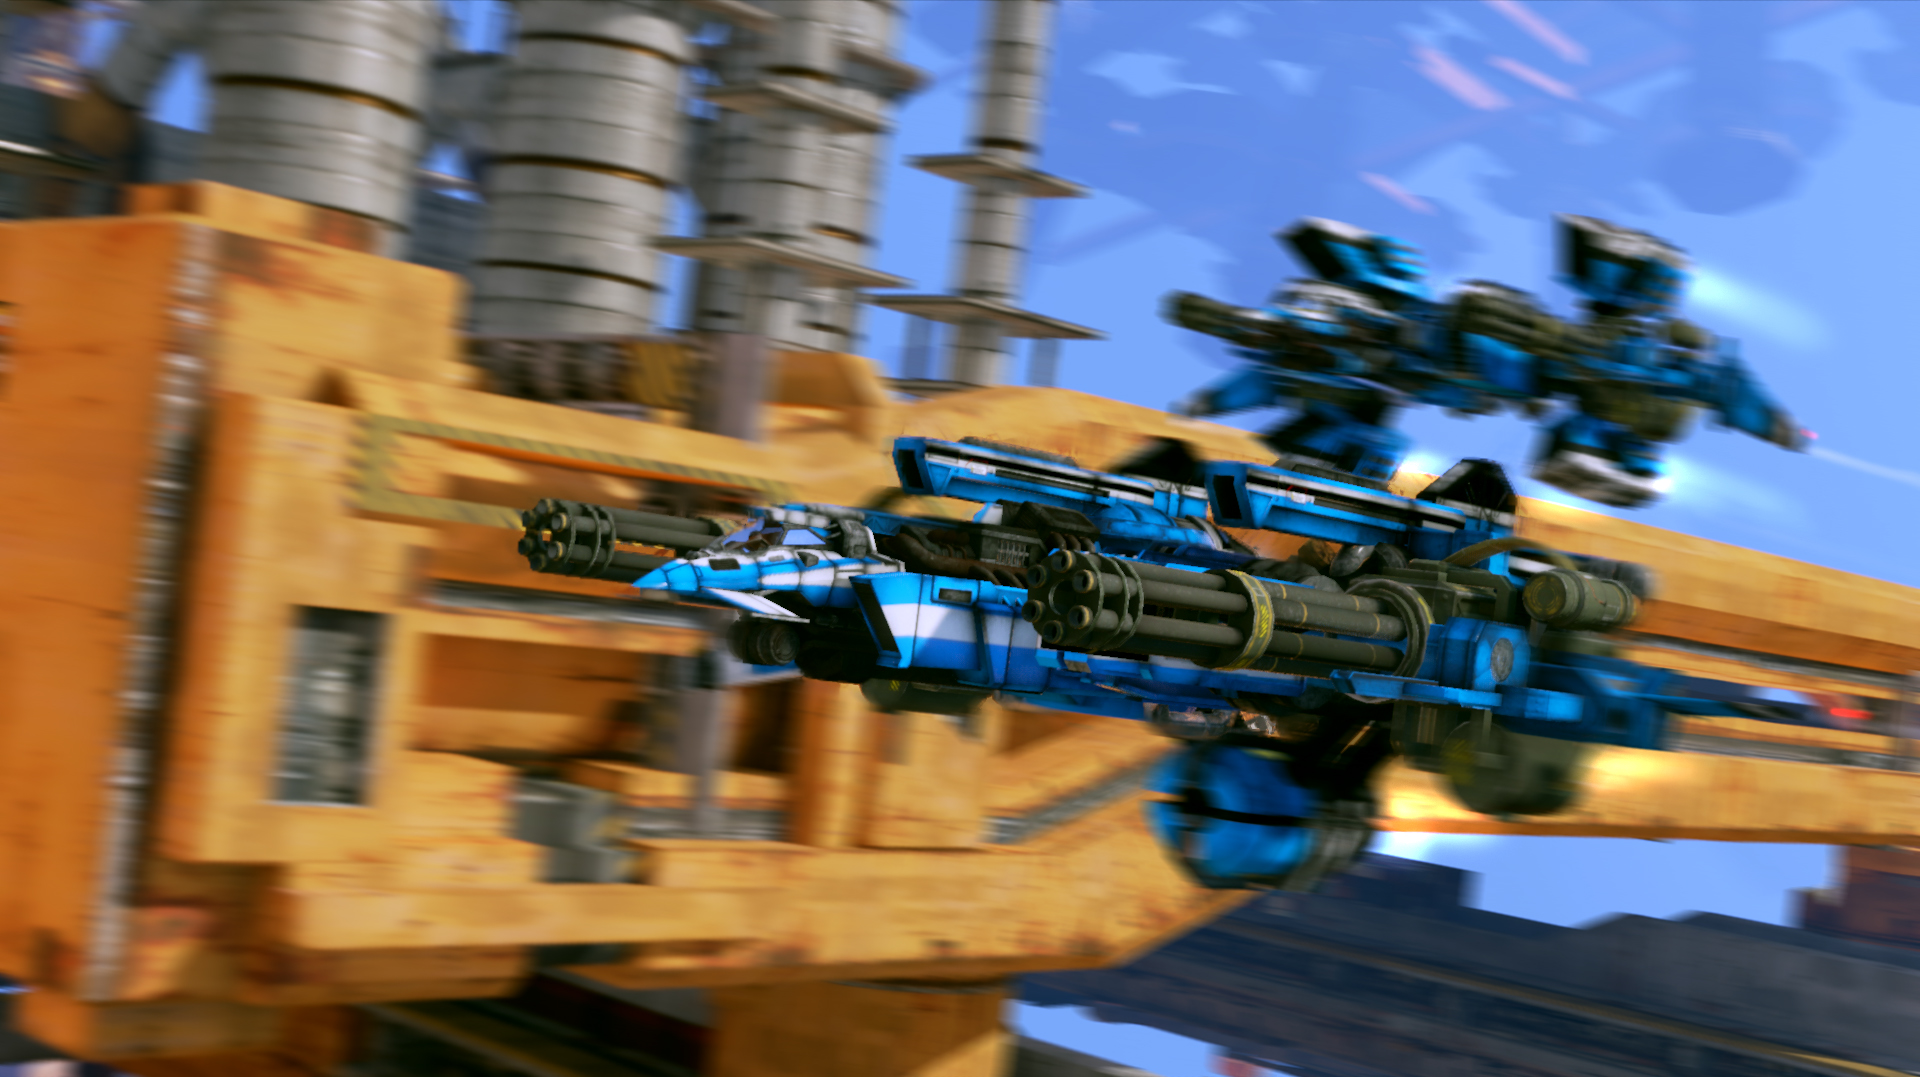 Strike Vector EX coming this summer to Xbox One